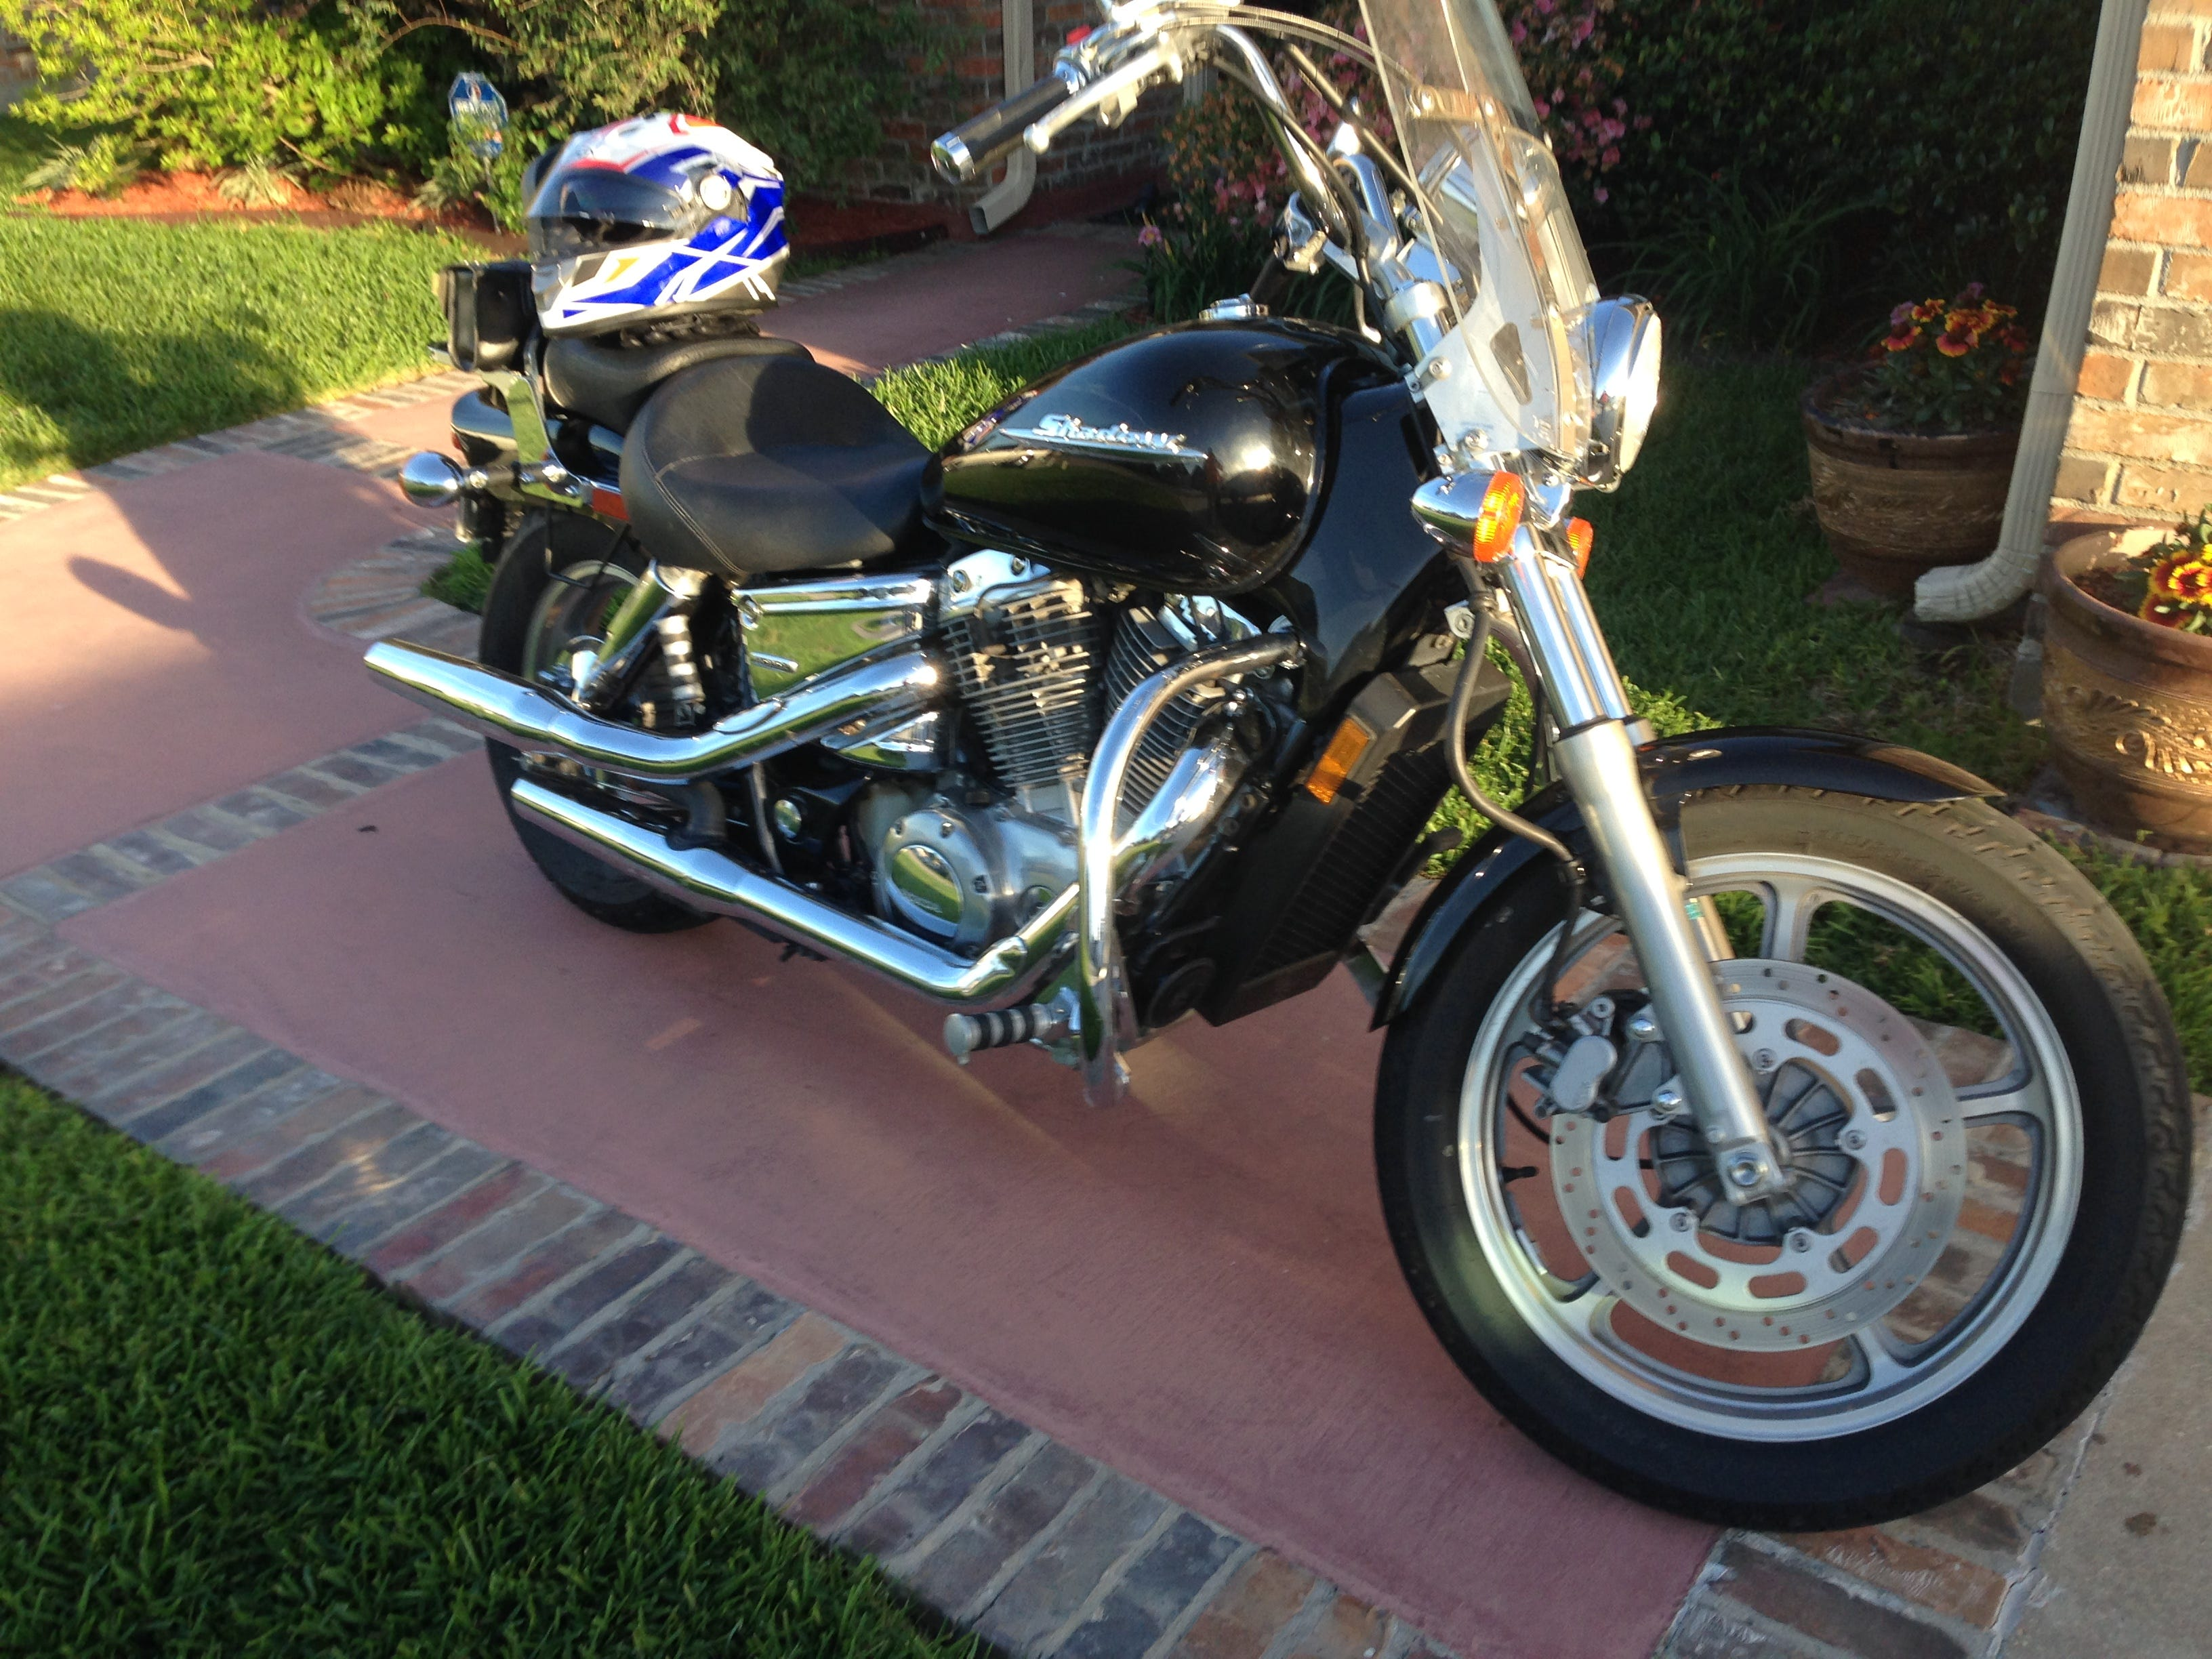 new battery and rear tire extra front and rear running lights Liquid cooled 45deg V Twin Engine Extended cruising range with 4 2 gallons fuel tank